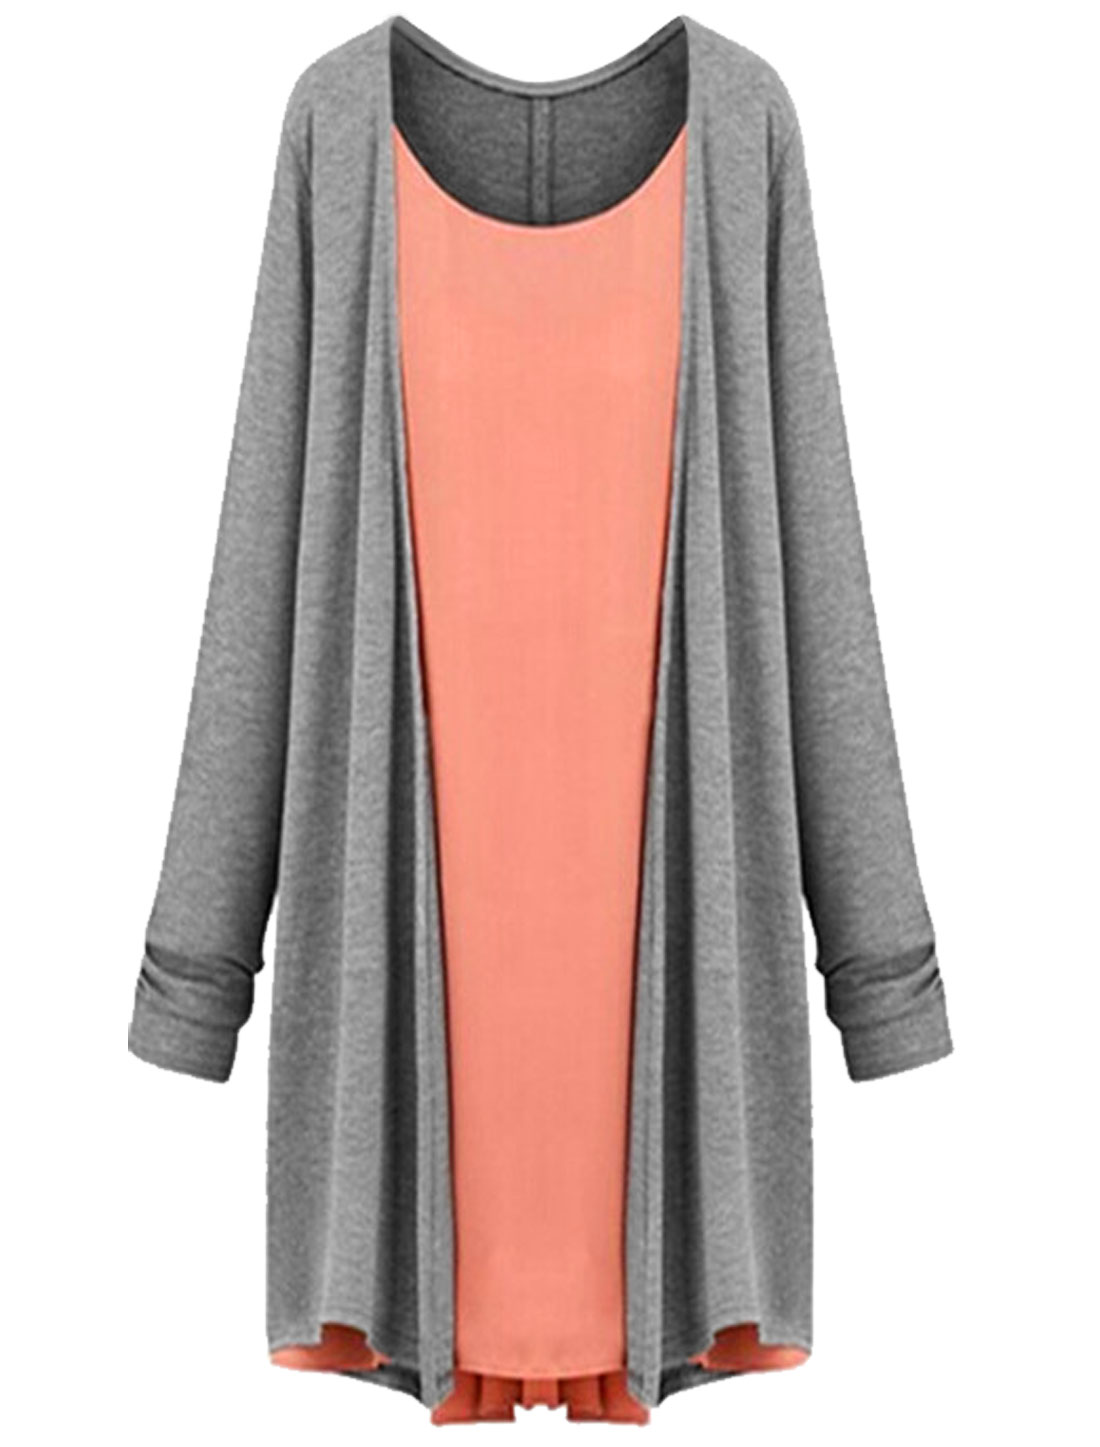 Long Sleeves Chiffon Panel Casual Top for Women Salmon Gray M